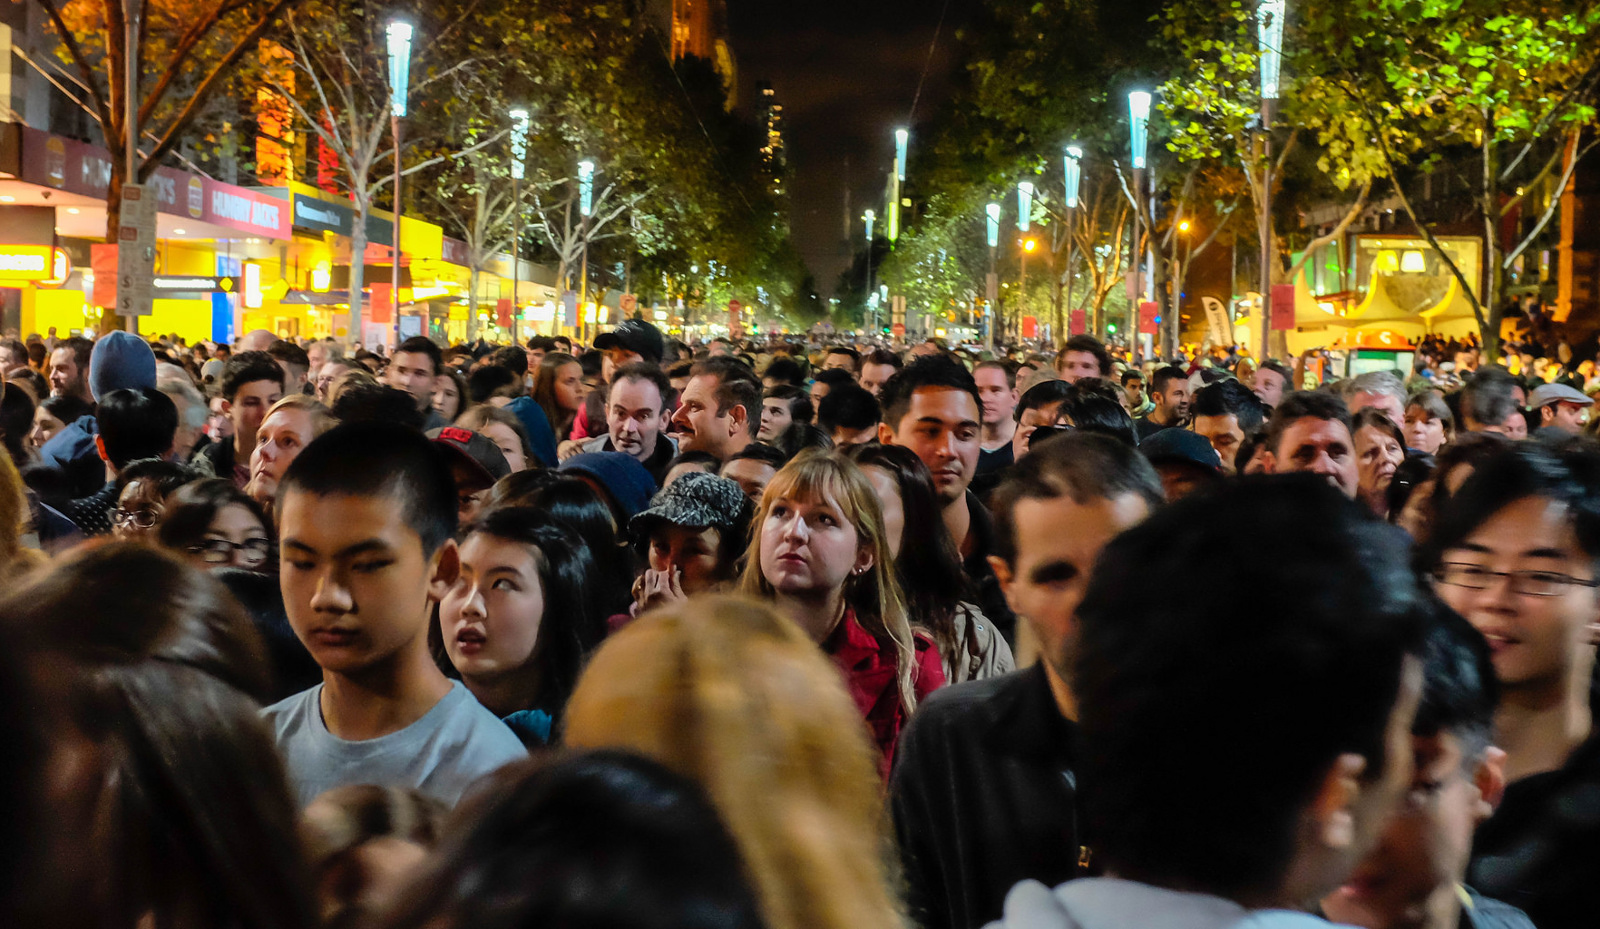 What Massive Human Population Growth Means for the Health of Planet – and What We Can Do About It